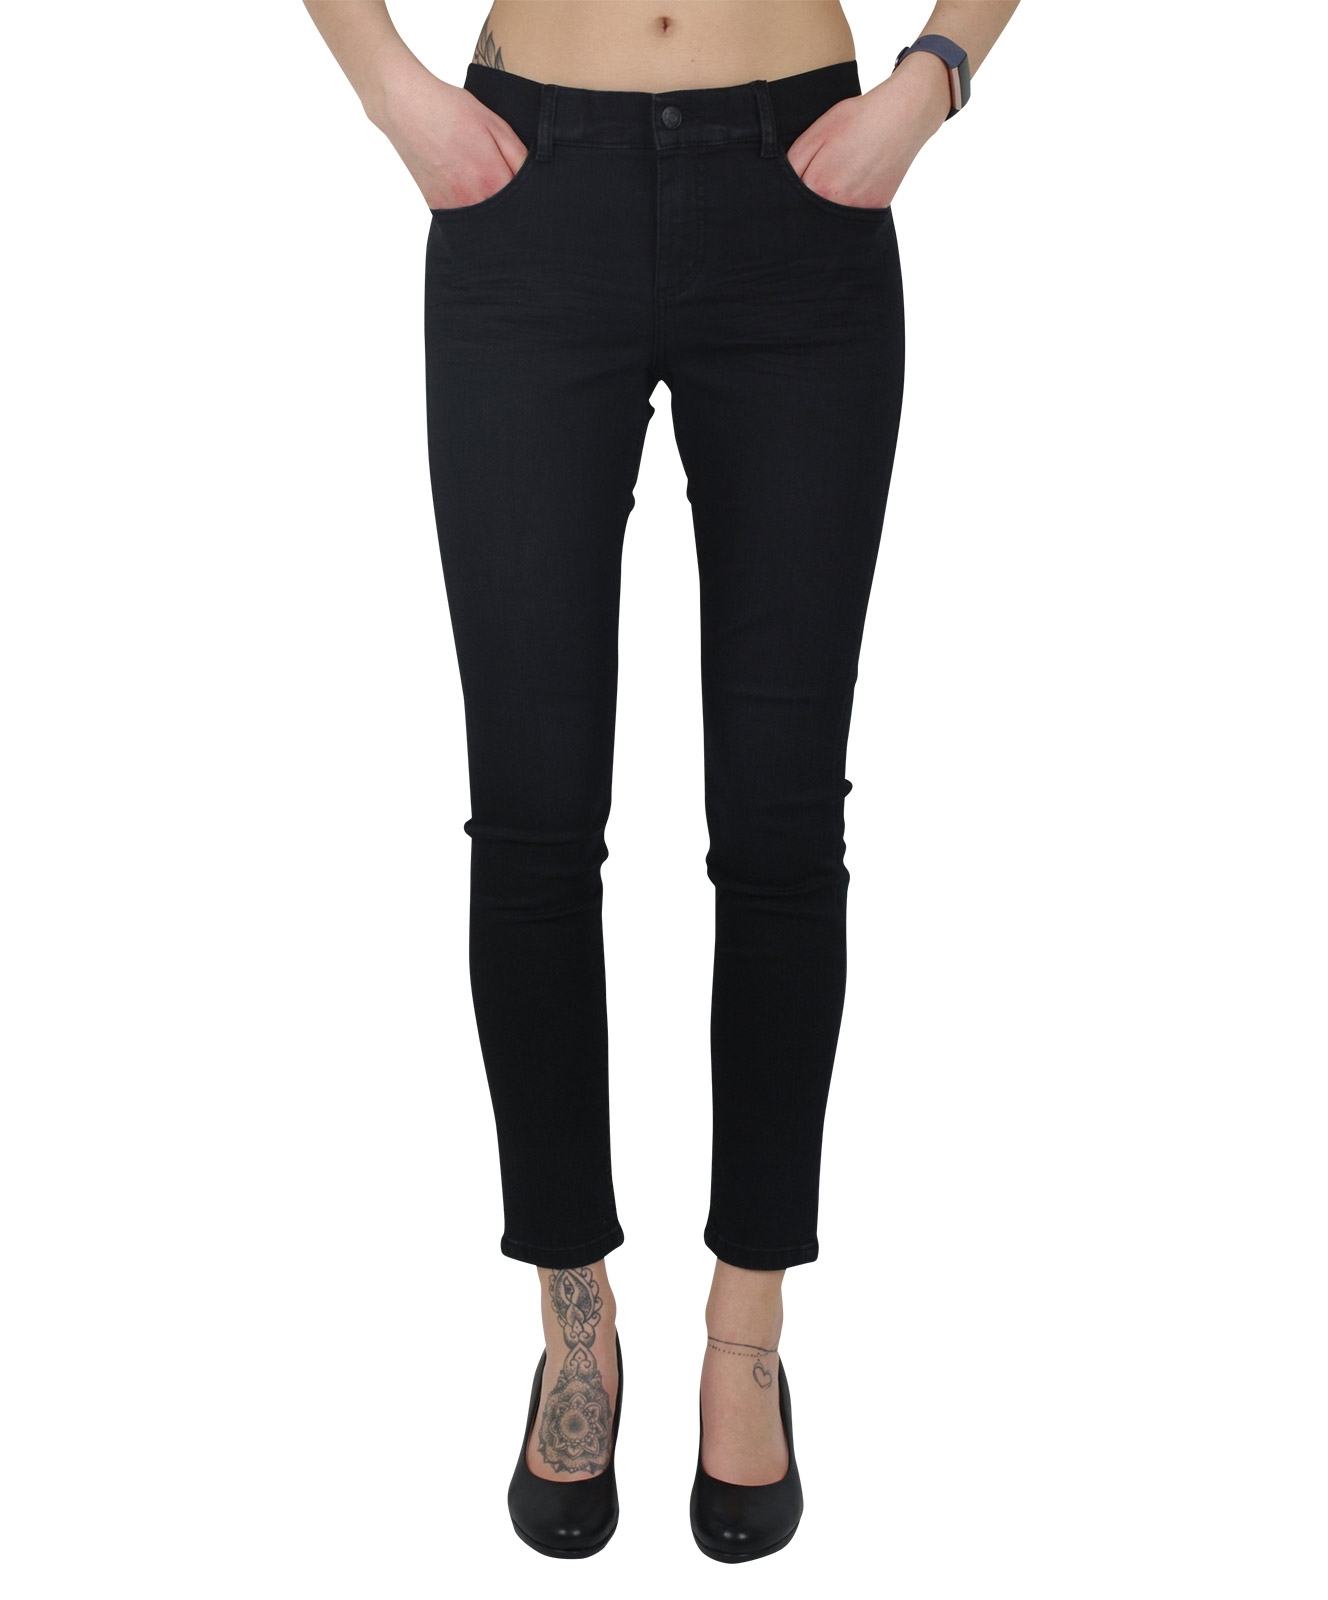 Hosen - Angels Jeggings One Size Fits All in Anthracite Used Buffi Crinkle  - Onlineshop Jeans Meile